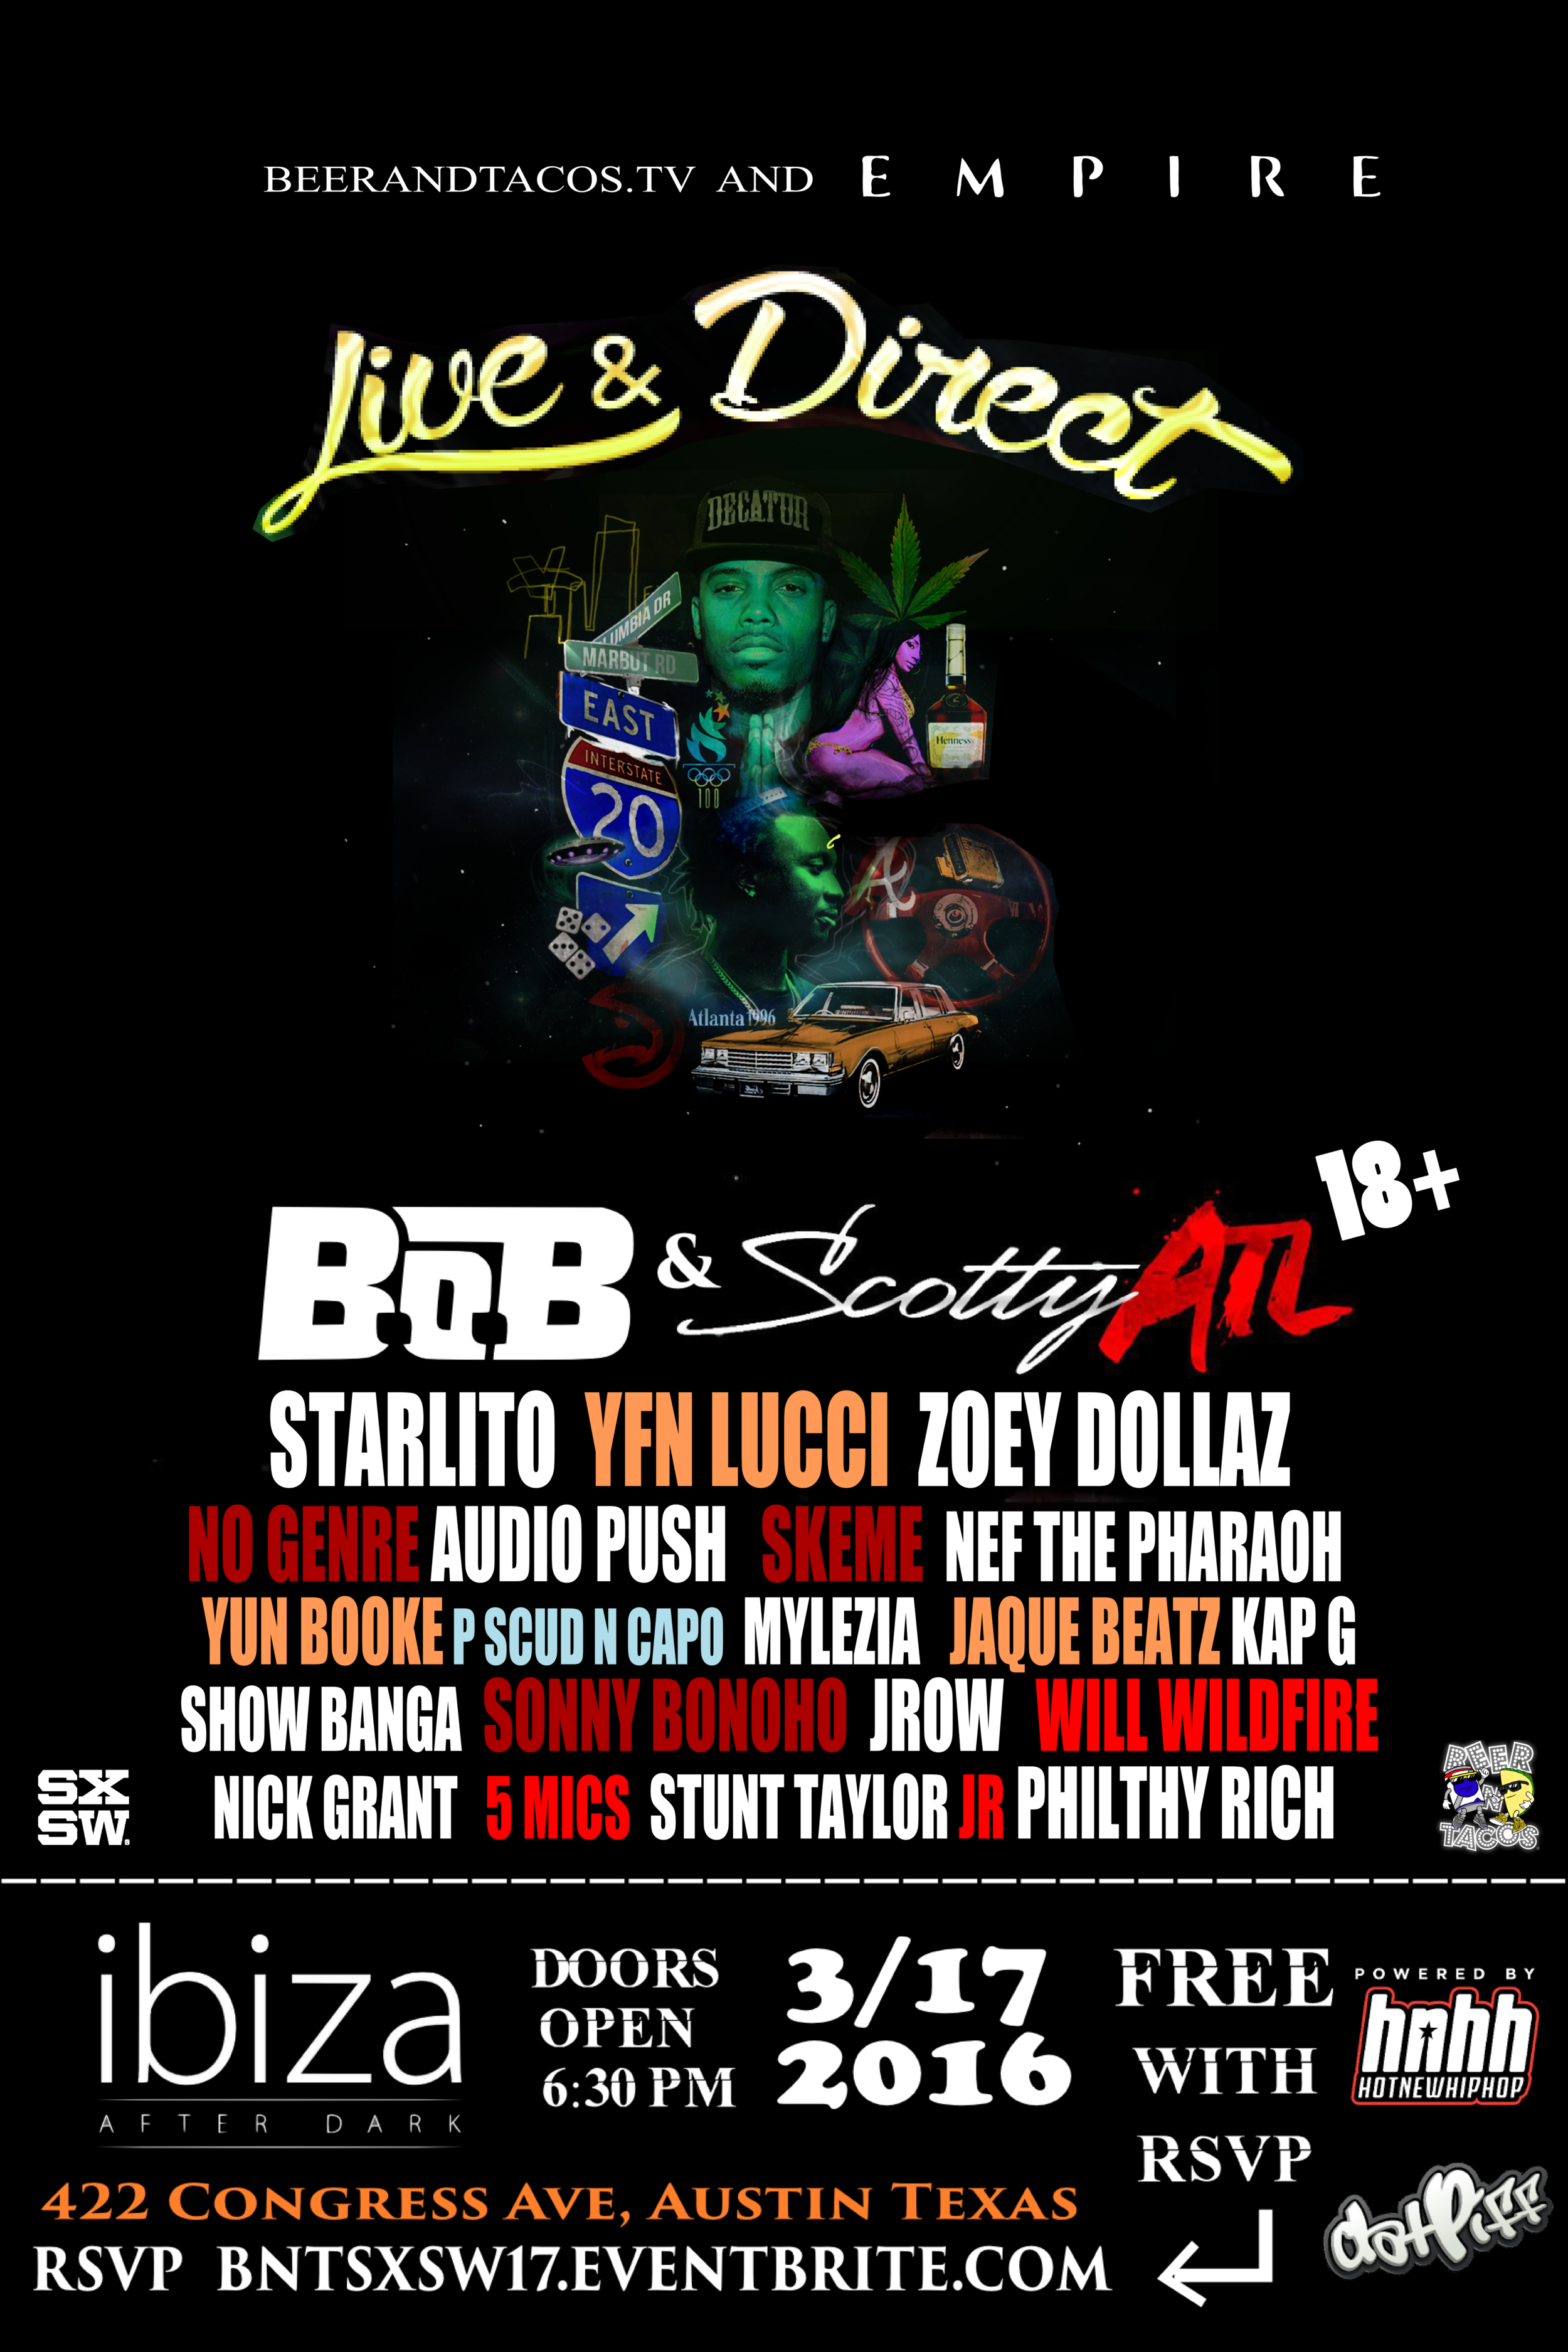 SXSW WITH NAMES SCOTTY ATL 56.png